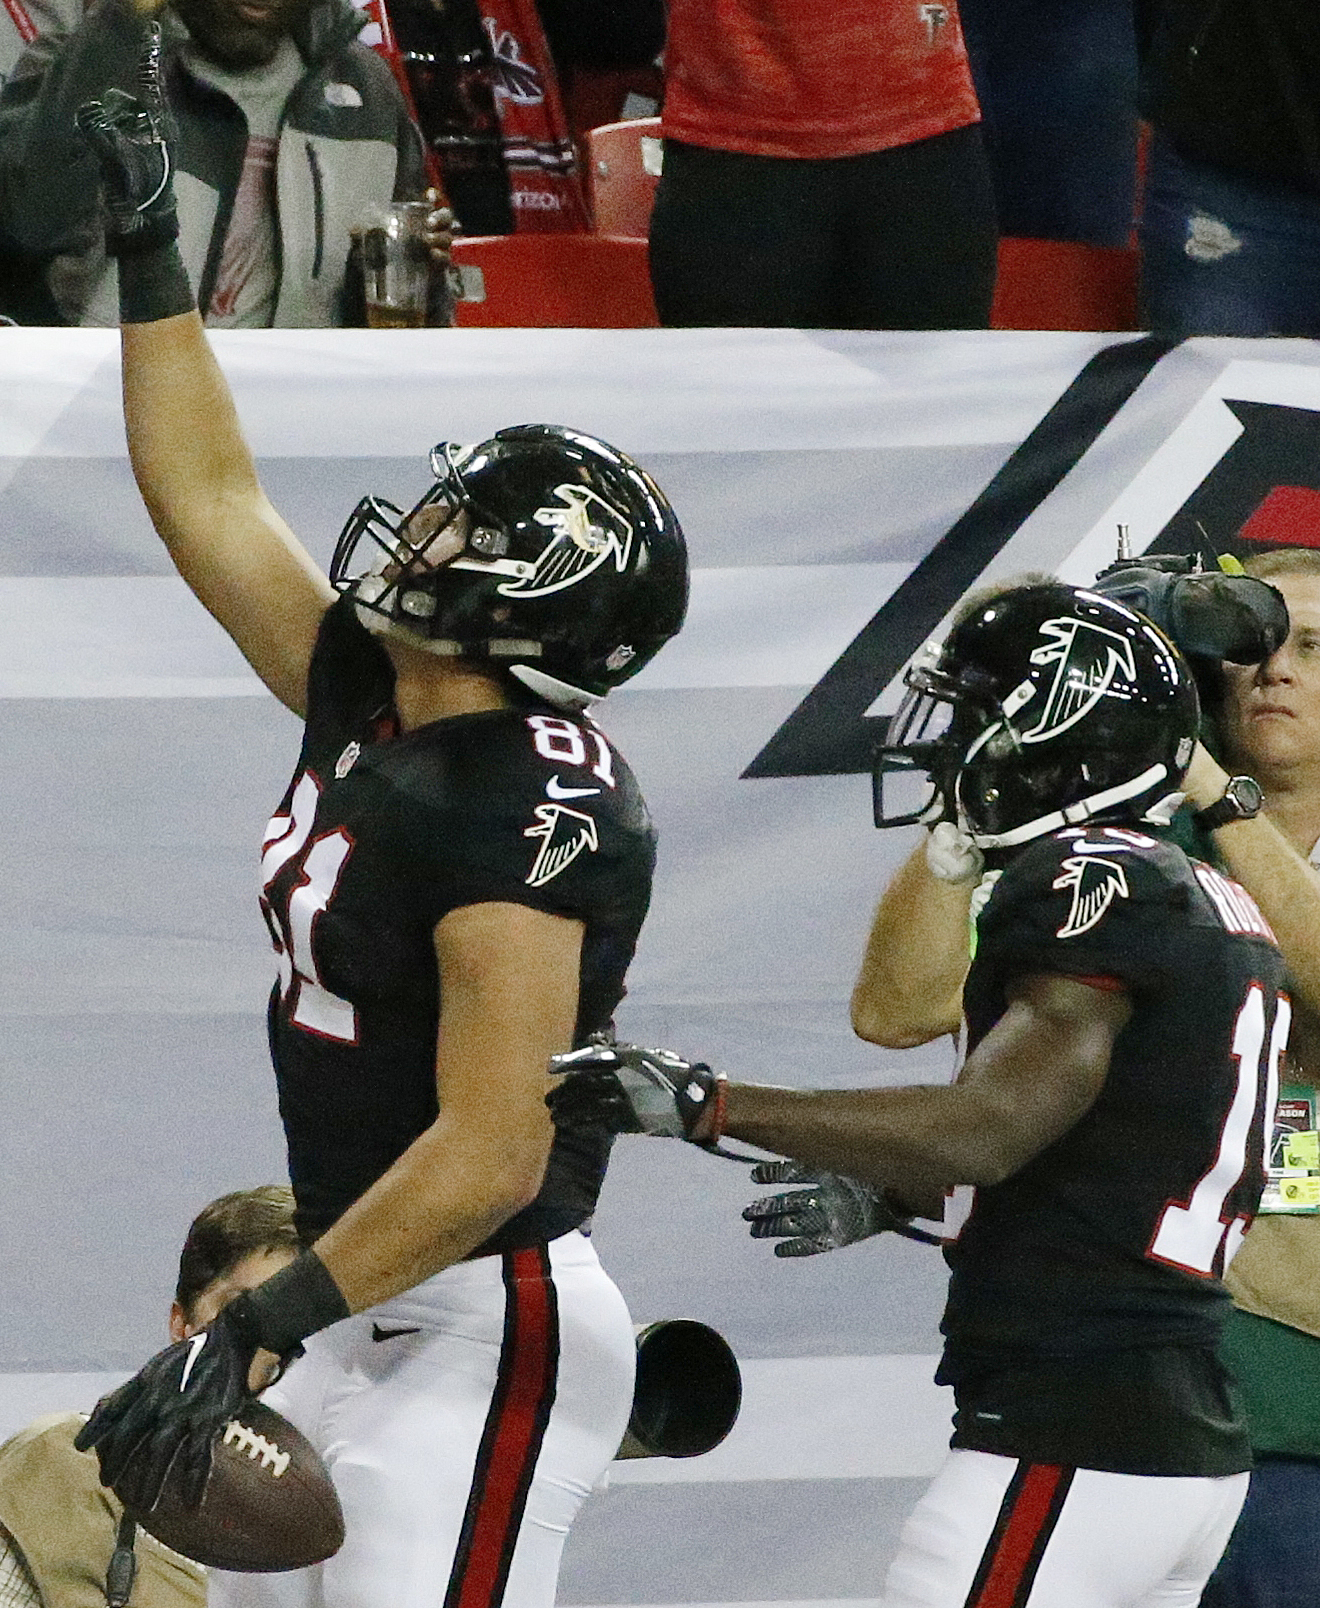 Atlanta Falcons tight end Austin Hooper (81) celebrates his touchdown against San Francisco 49ers with Atlanta Falcons wide receiver Aldrick Robinson, right, during the first half of an NFL football game, Sunday, Dec. 18, 2016, in Atlanta. (AP Photo/Butch